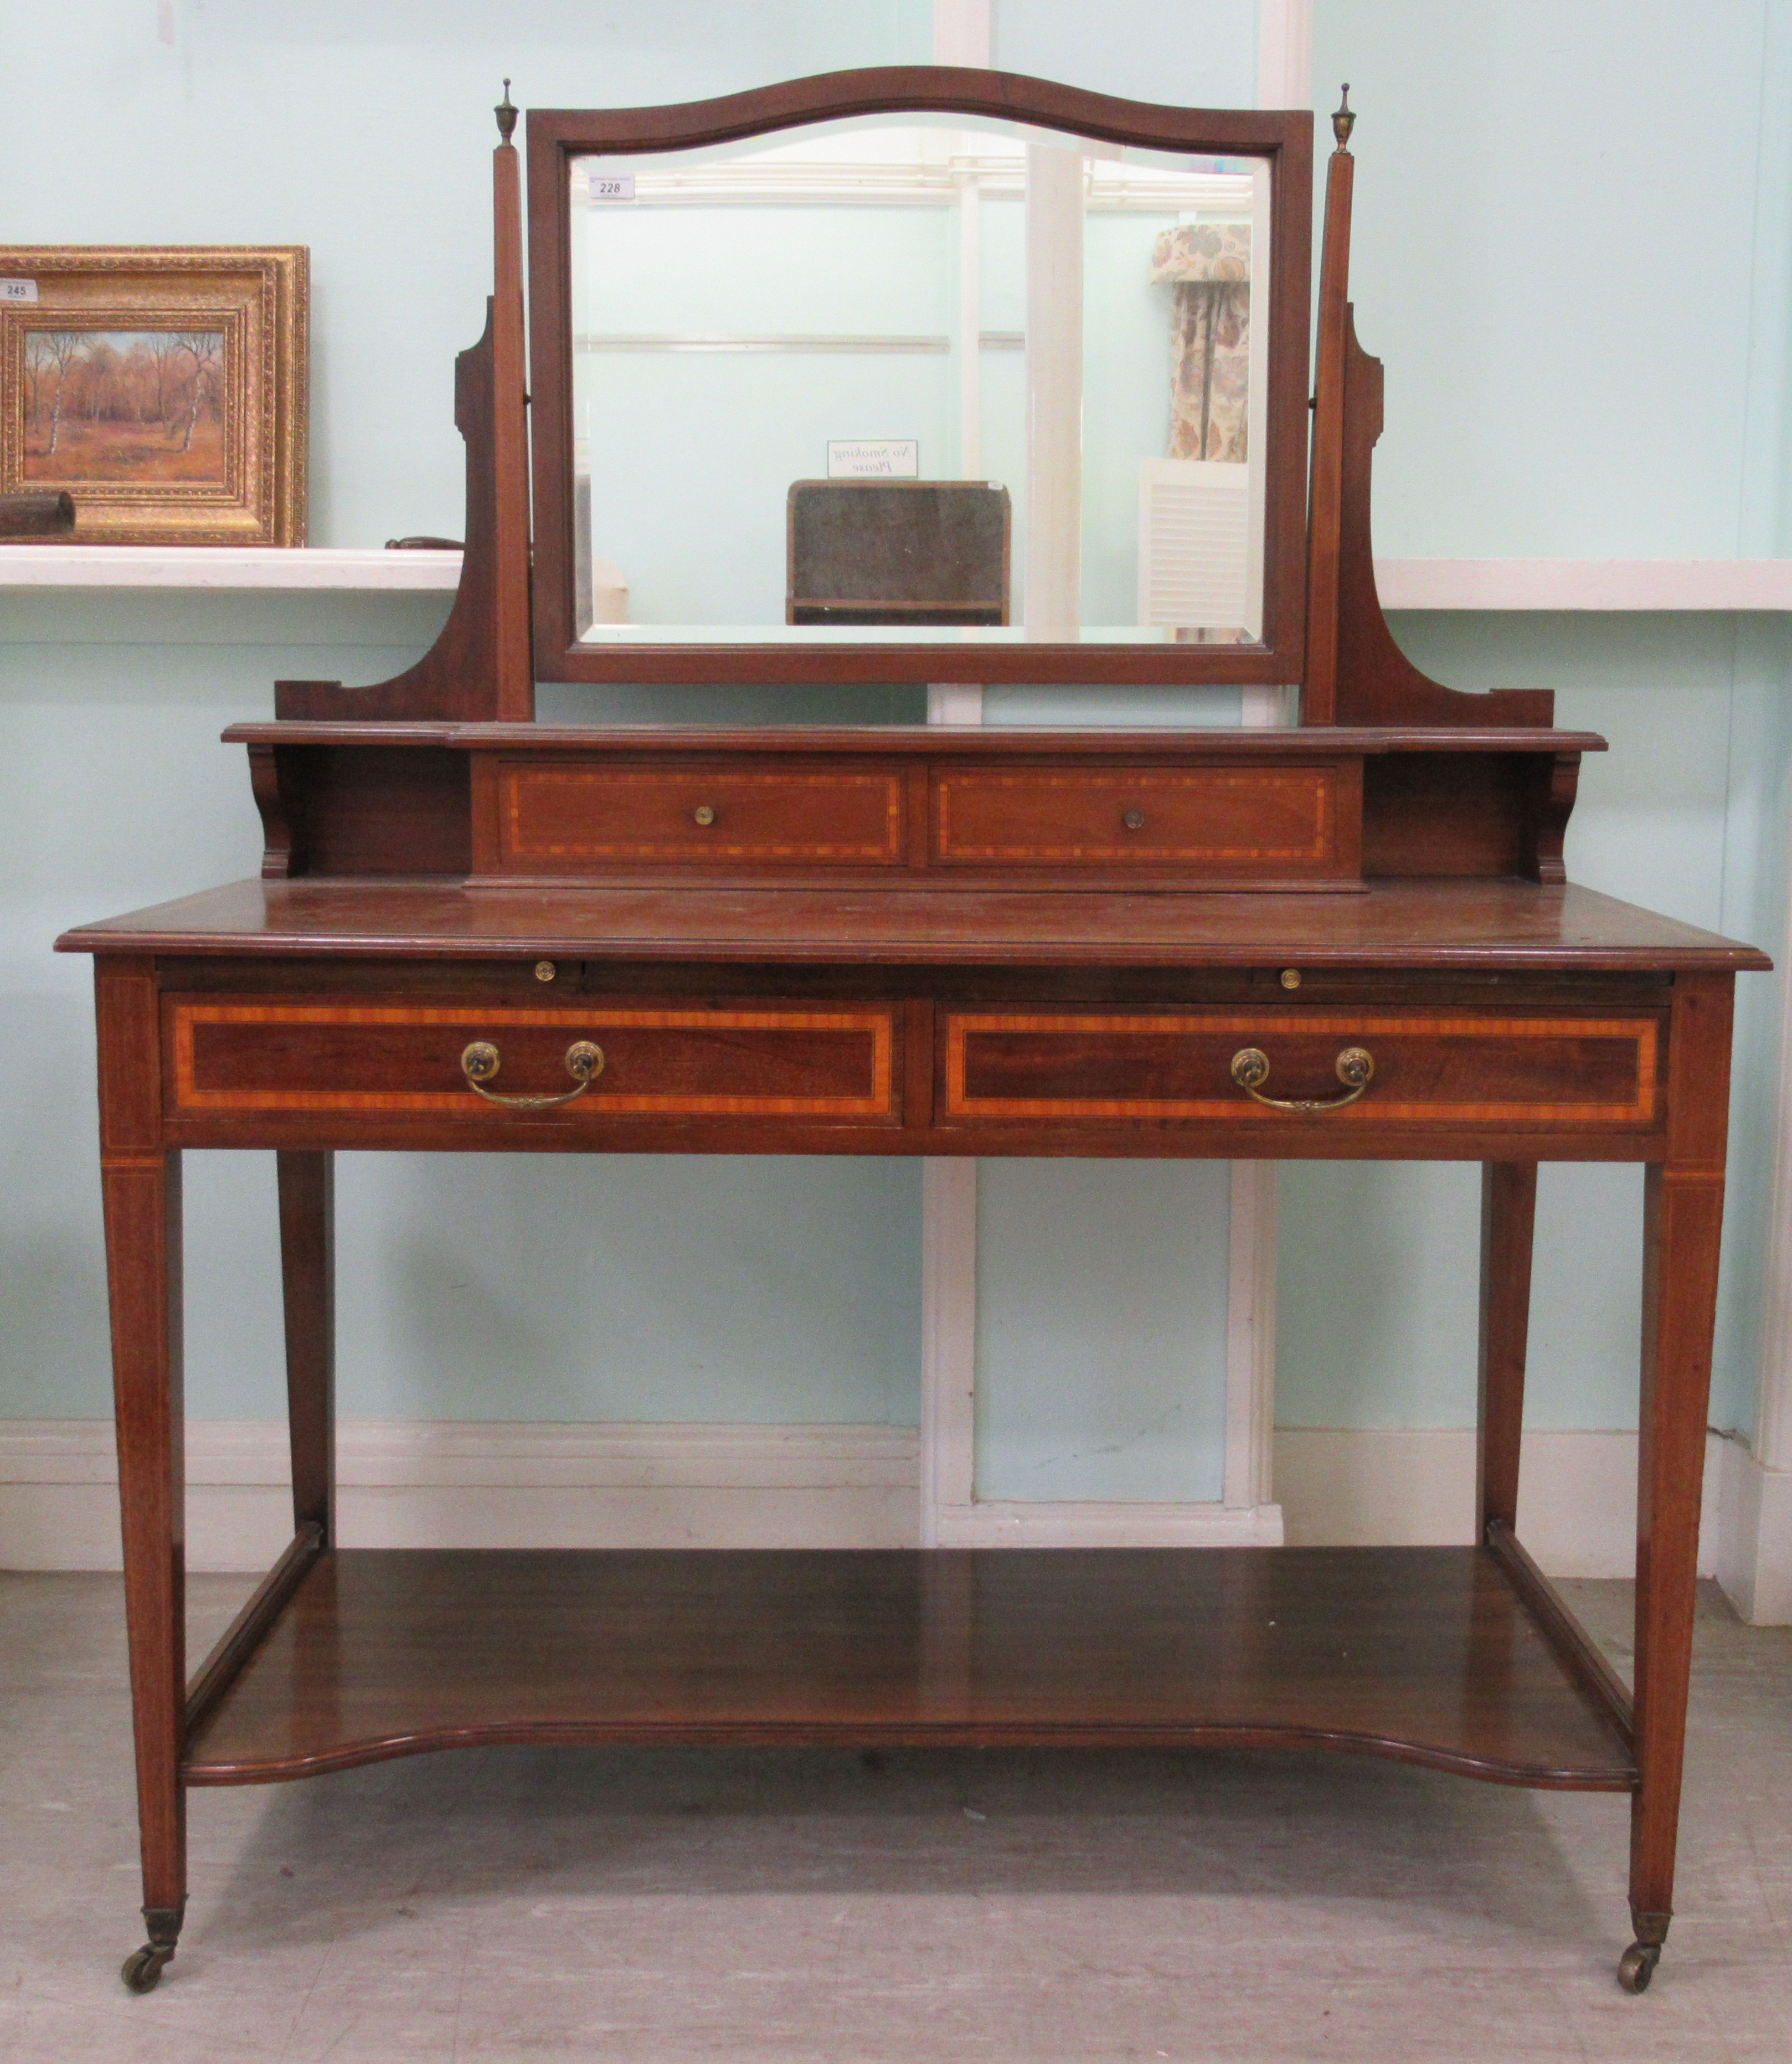 An Edwardian Maple & Co string inlaid ebony and crossbanded mahogany dressing table, surmounted by a